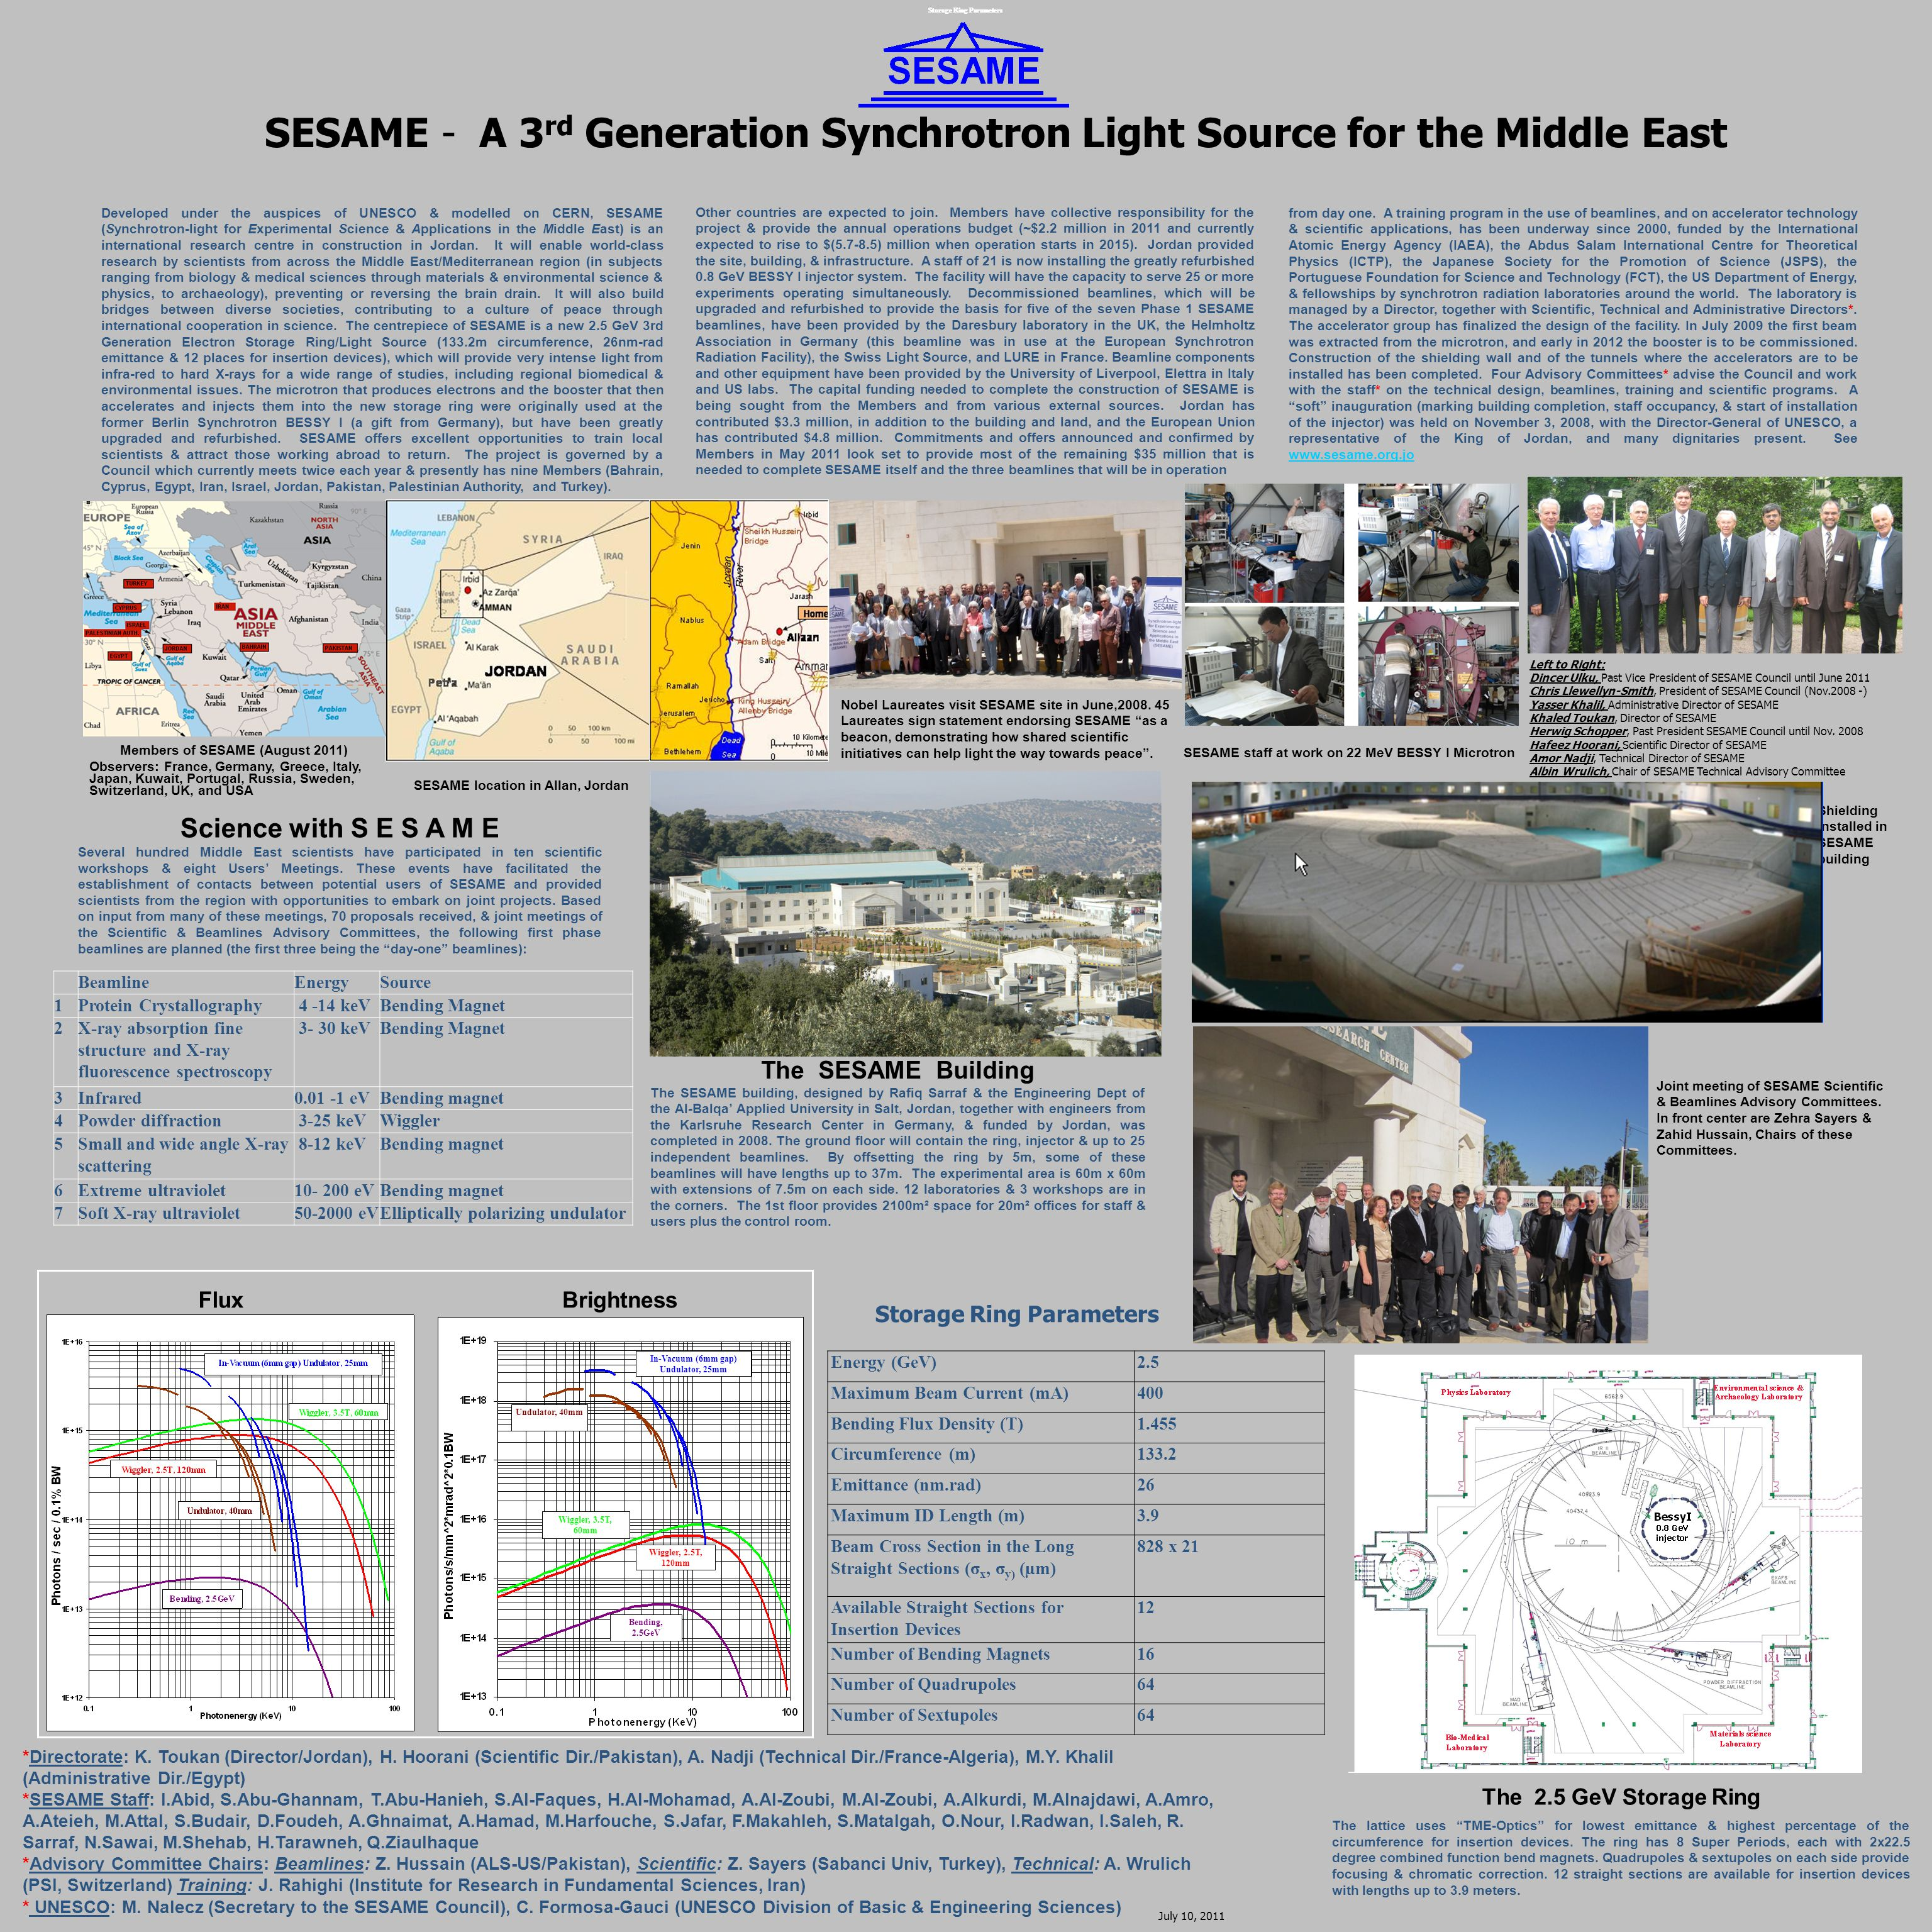 SESAME - A 3 rd Generation Synchrotron Light Source for the Middle East Developed under the auspices of UNESCO & modelled on CERN, SESAME (Synchrotron-light for Experimental Science & Applications in the Middle East) is an international research centre in construction in Jordan.